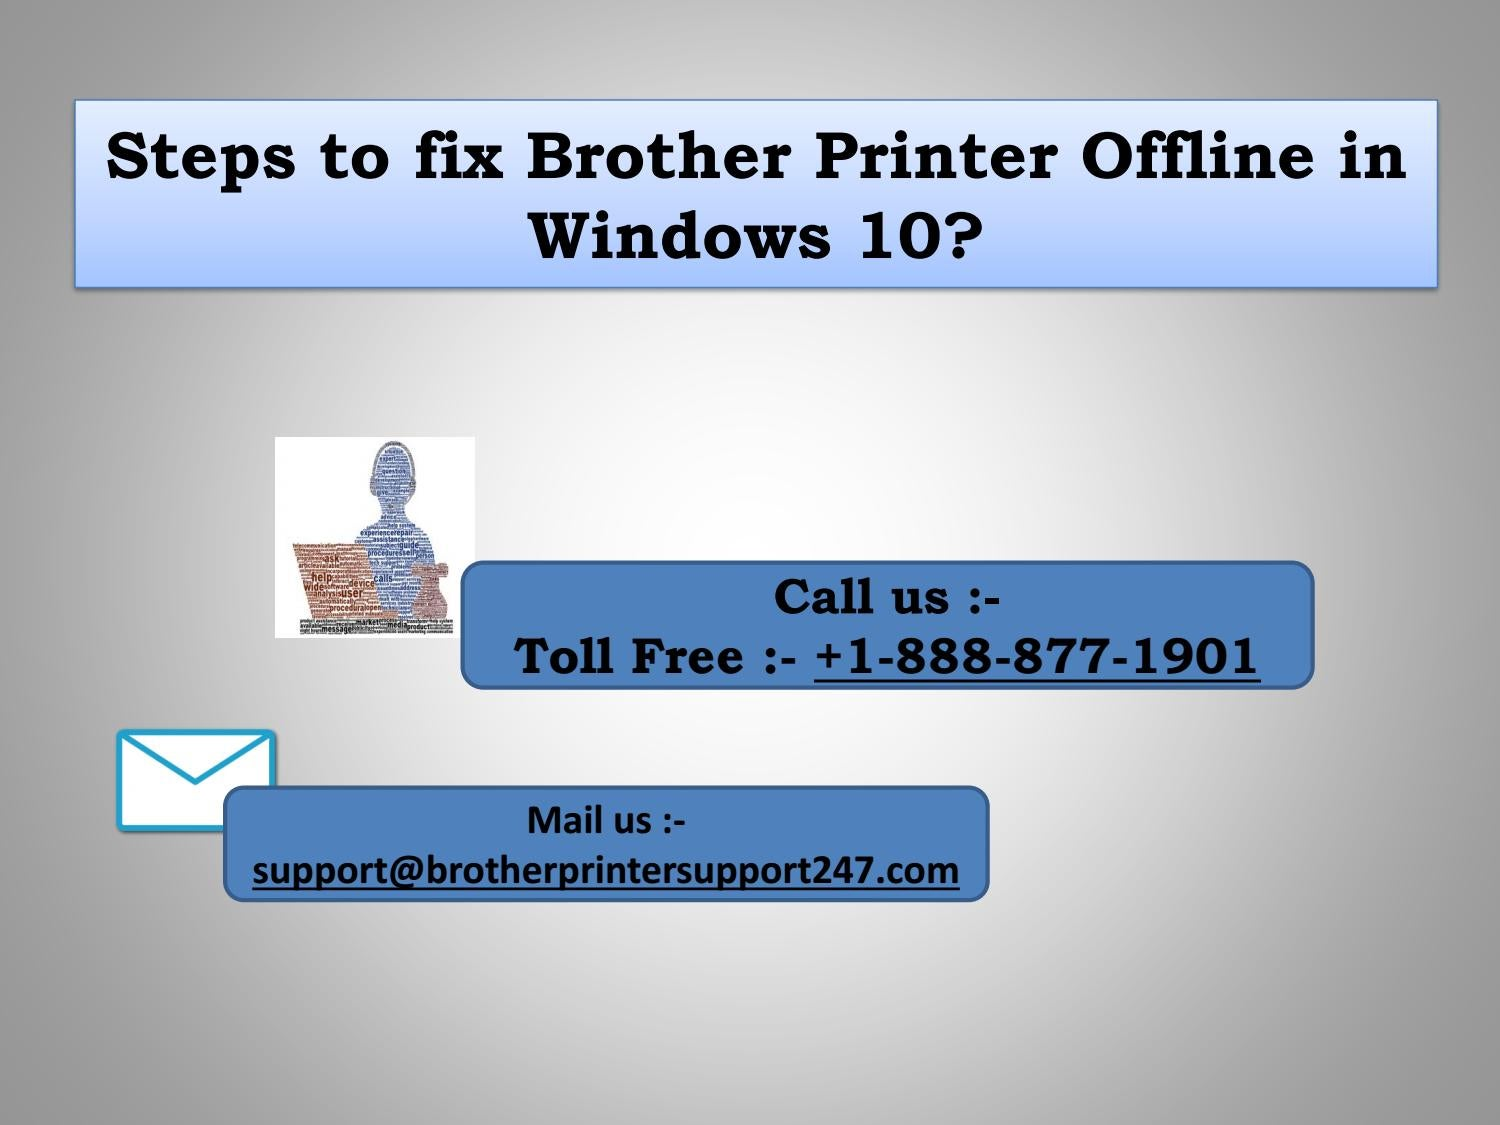 How to fix Brother Printer Offline in Windows 10? by